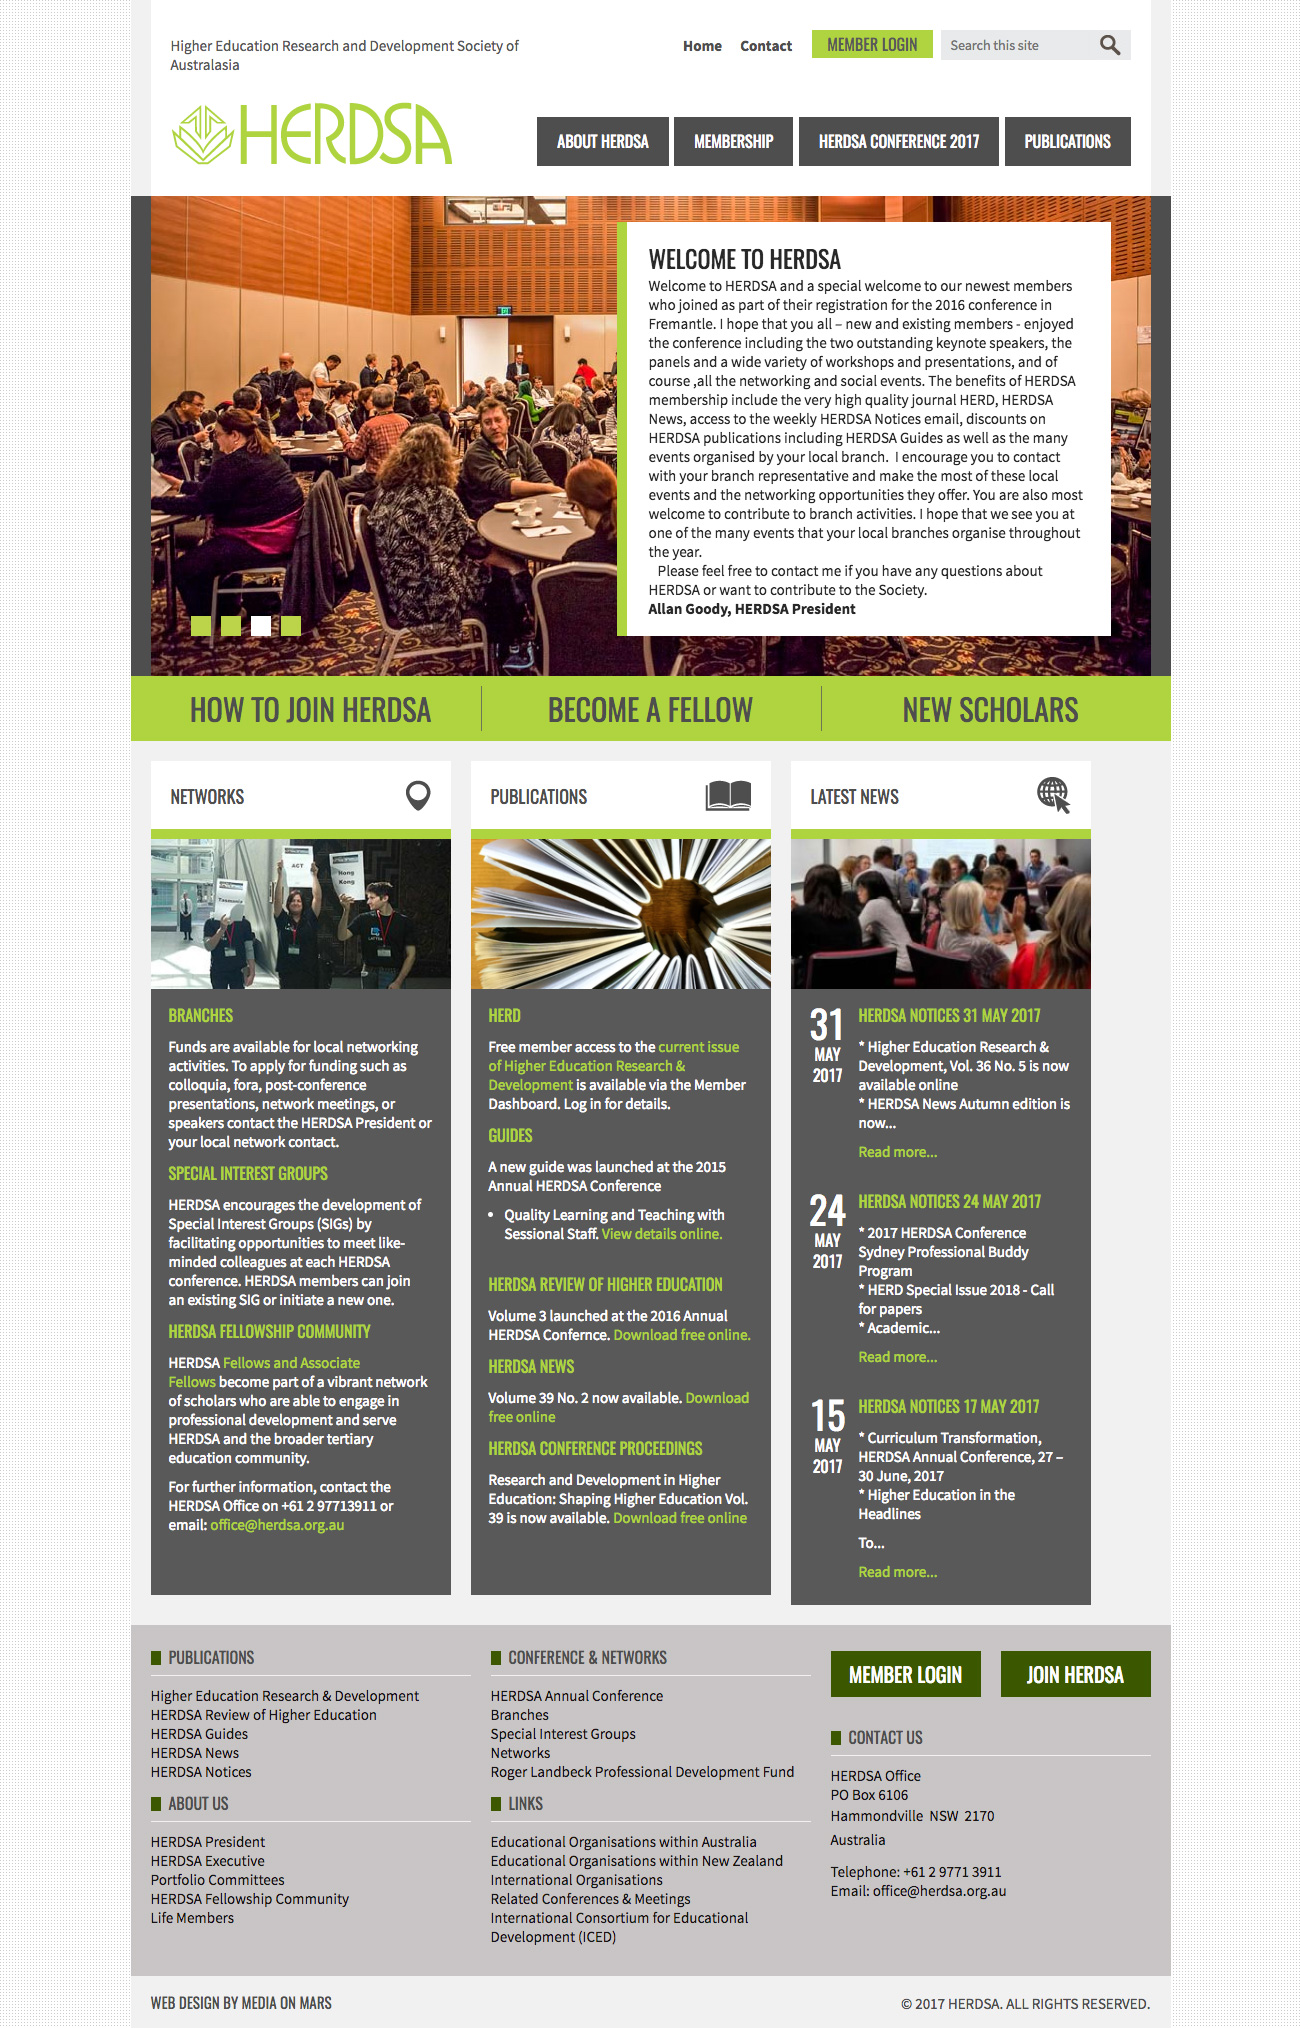 Screen grab of HERDSA website homepage